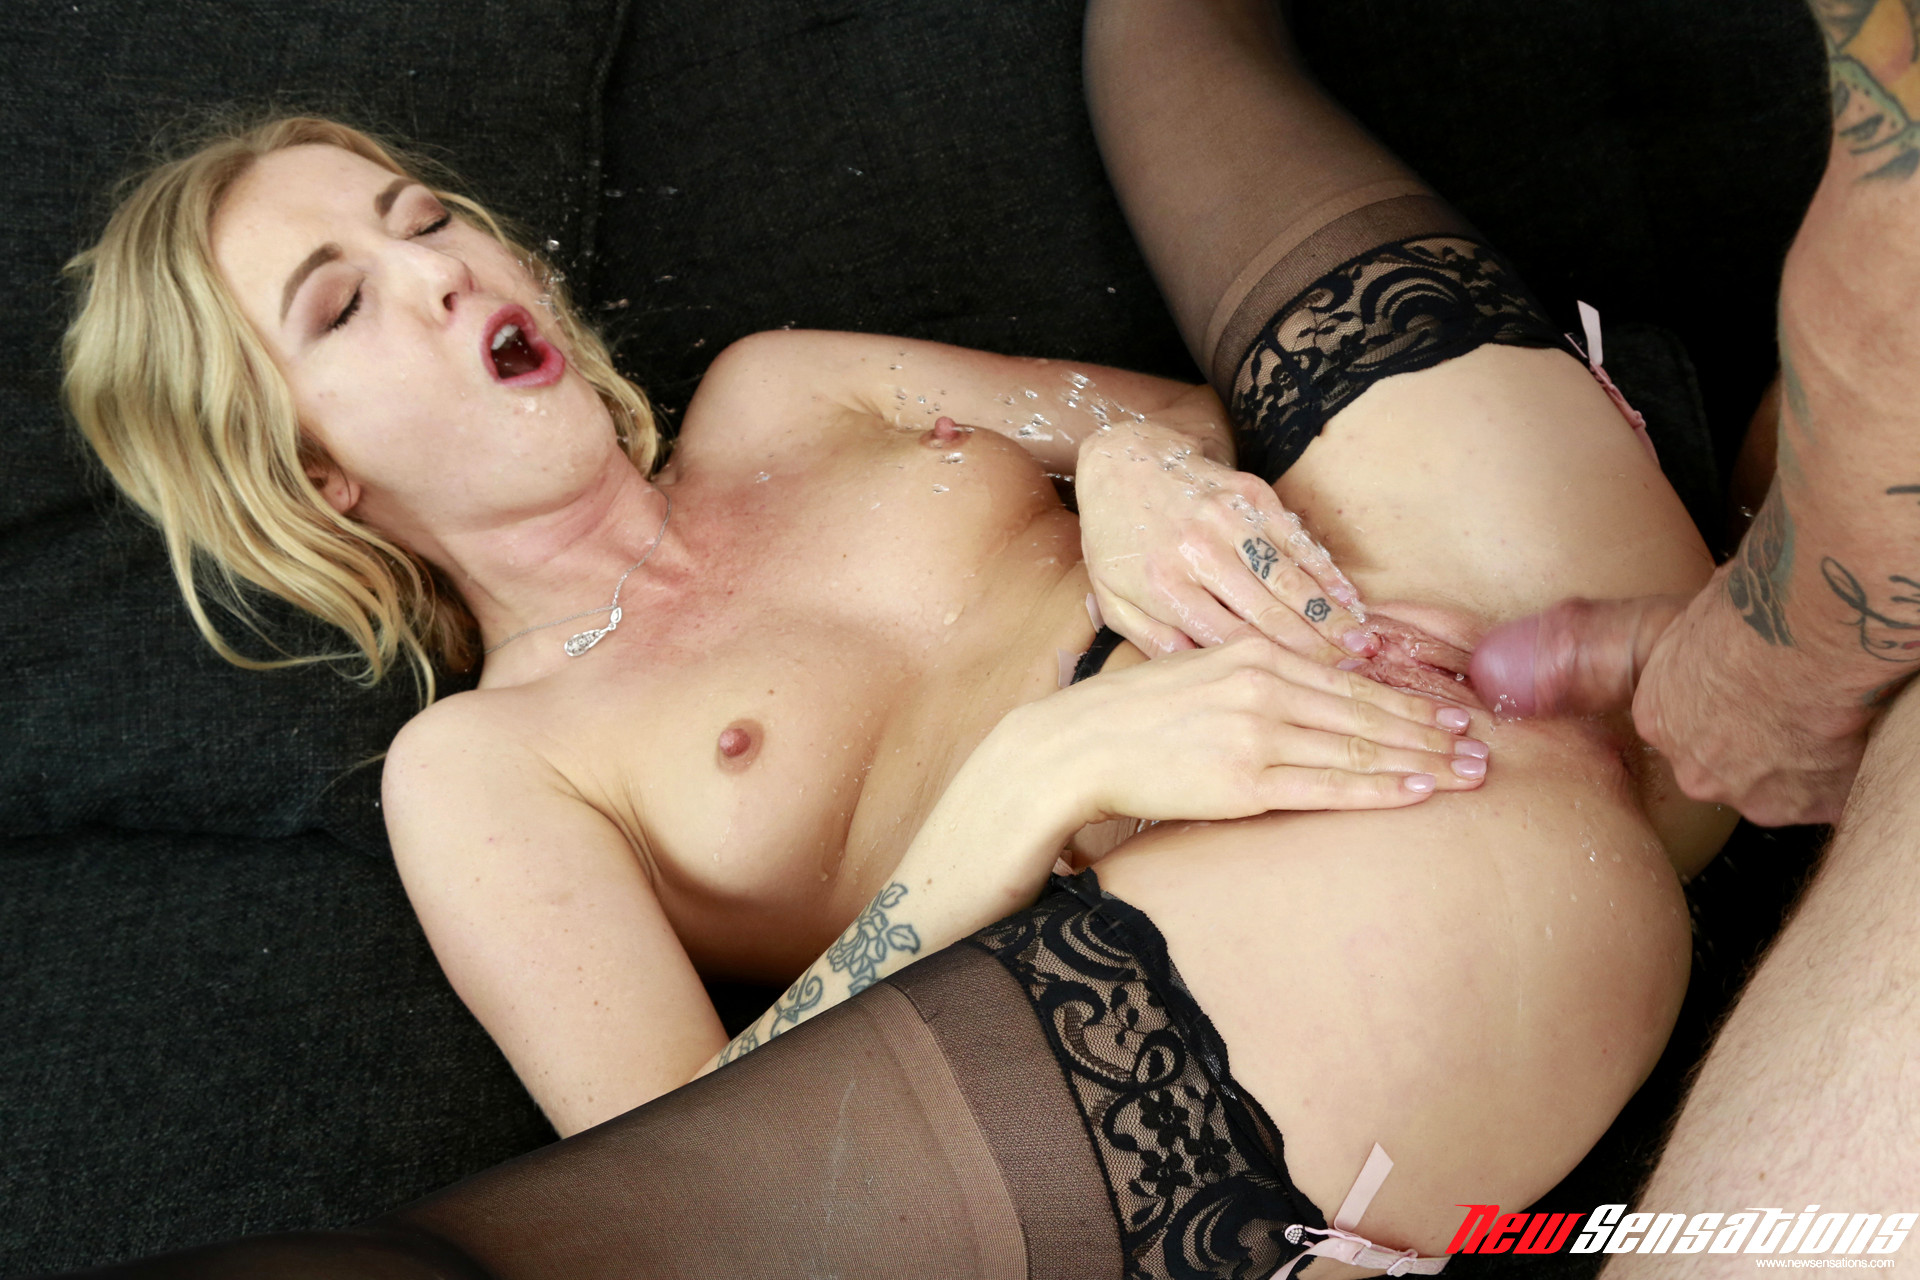 rough-icarly-porn-squirt-nude